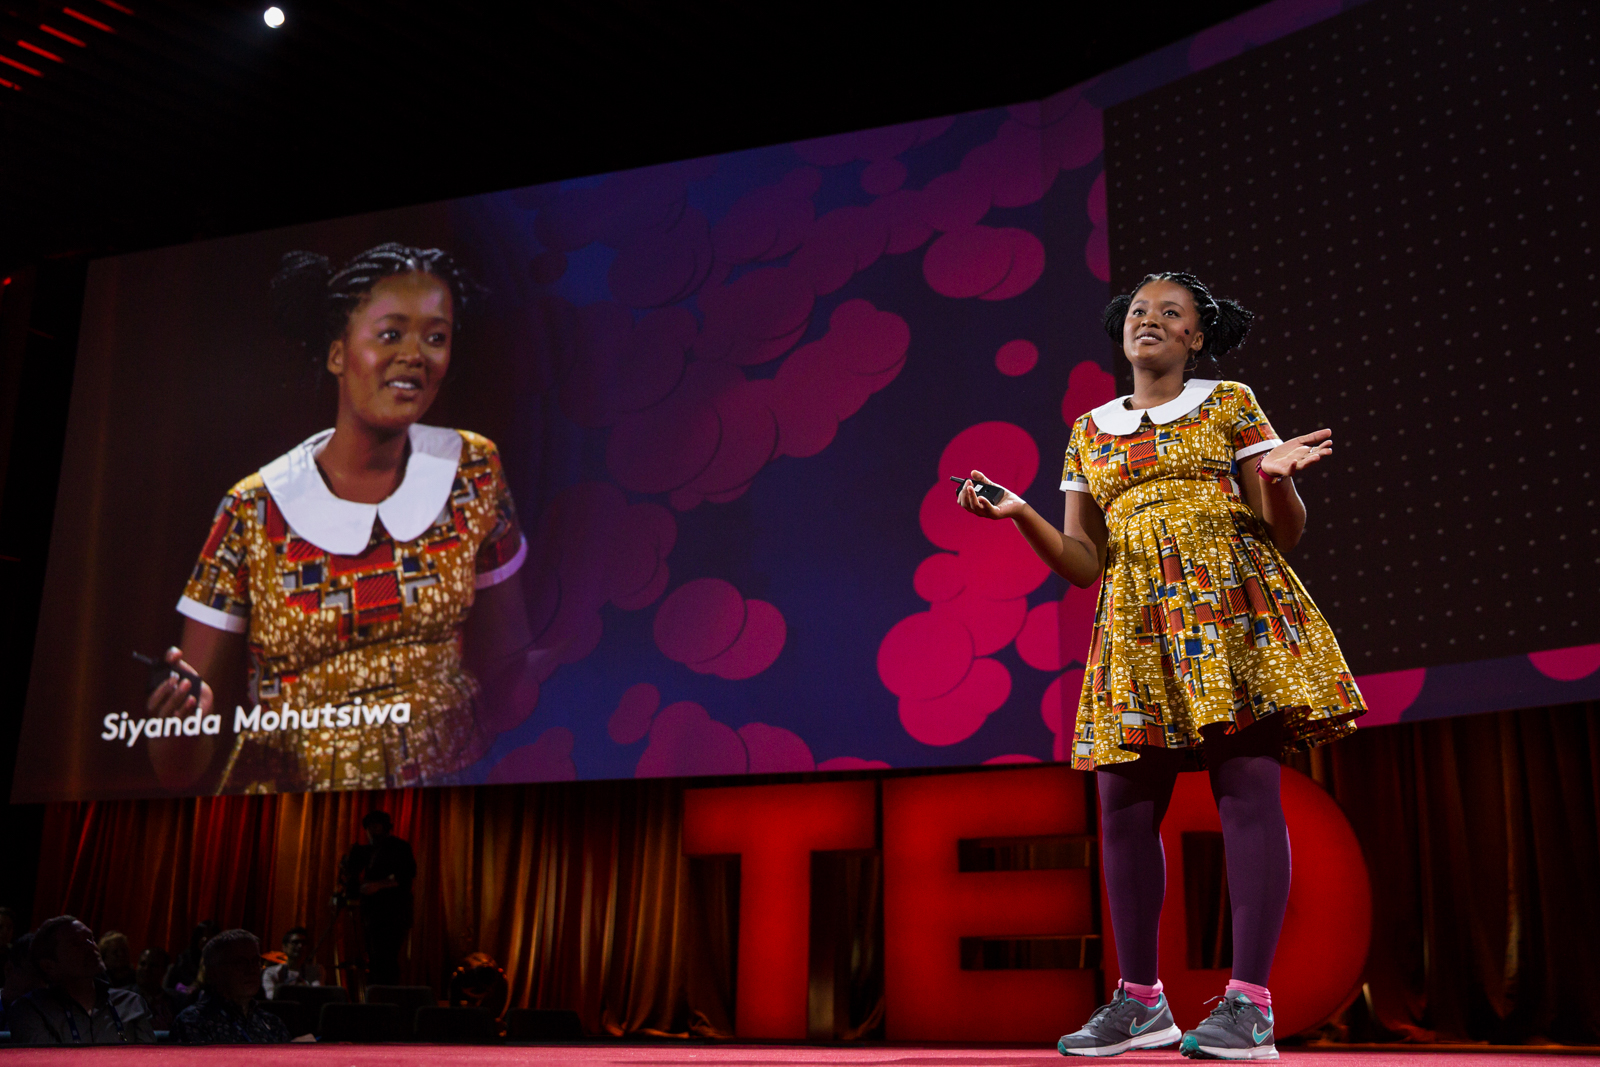 Siyanda Mohutsiwa speaks at TED2016 - Dream, February 15-19, 2016, Vancouver Convention Center, Vancouver, Canada. Photo: Bret Hartman / TED